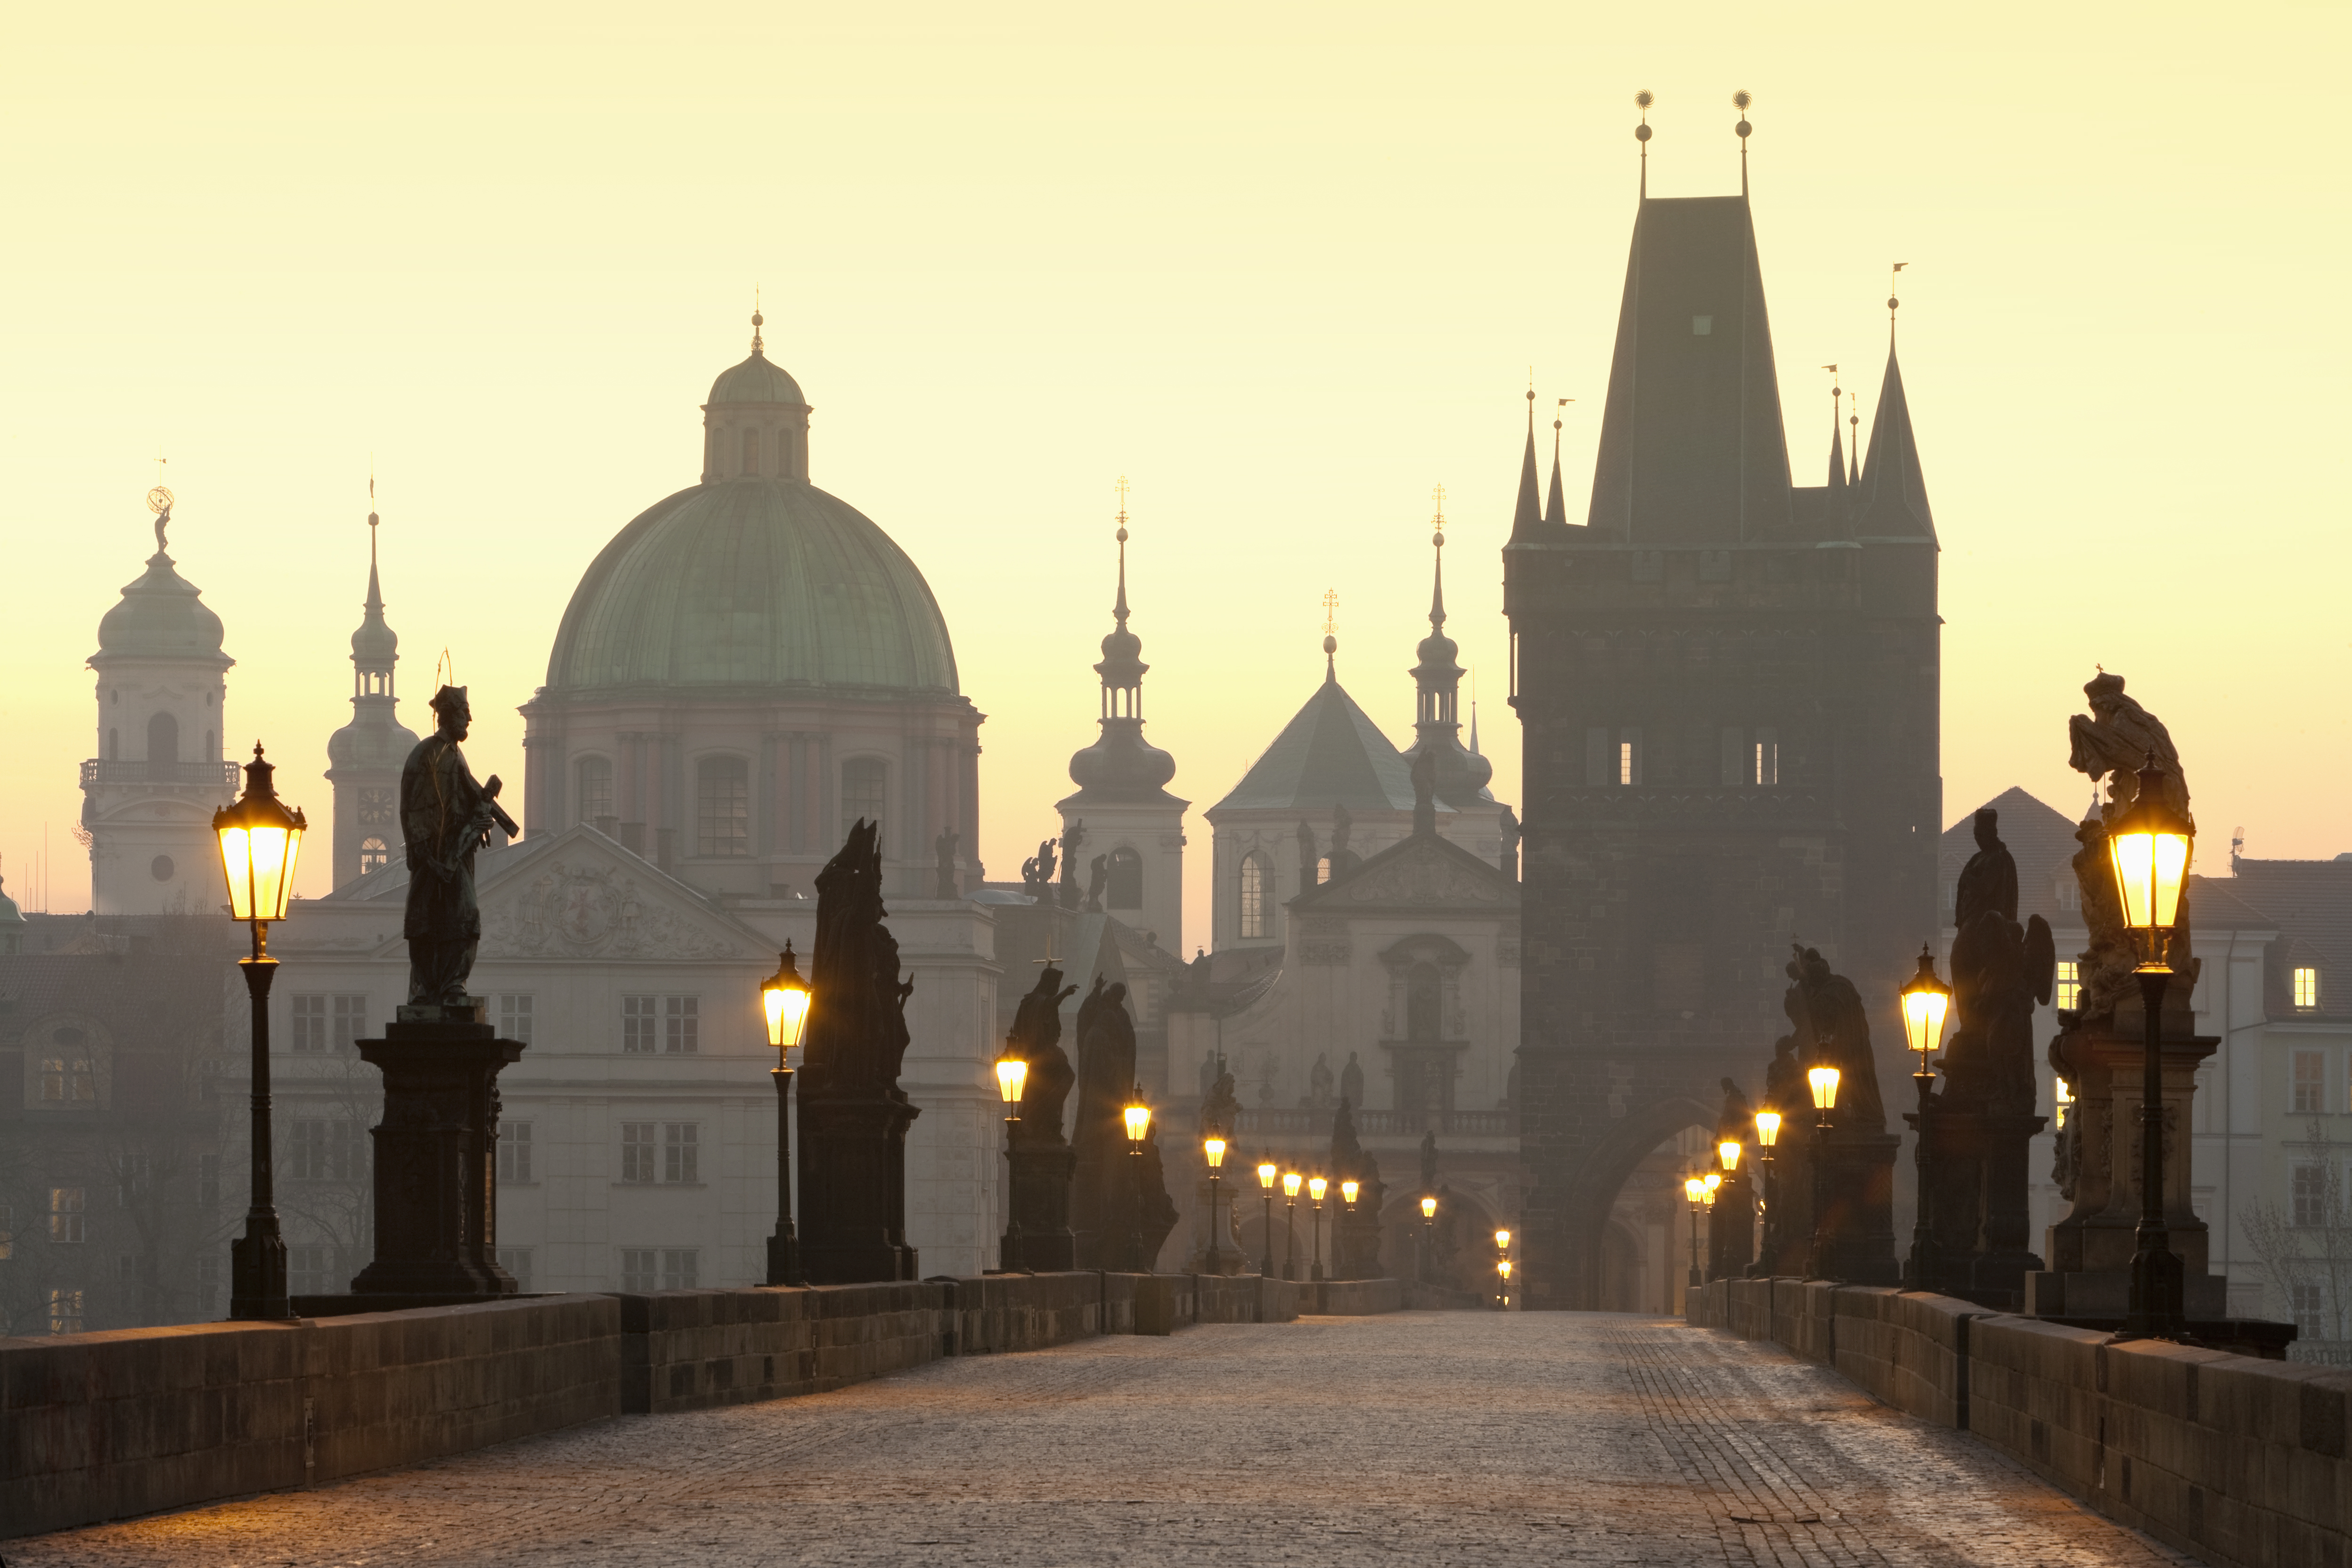 Charles IV: Architectural Legacy and Modern Urban Environment